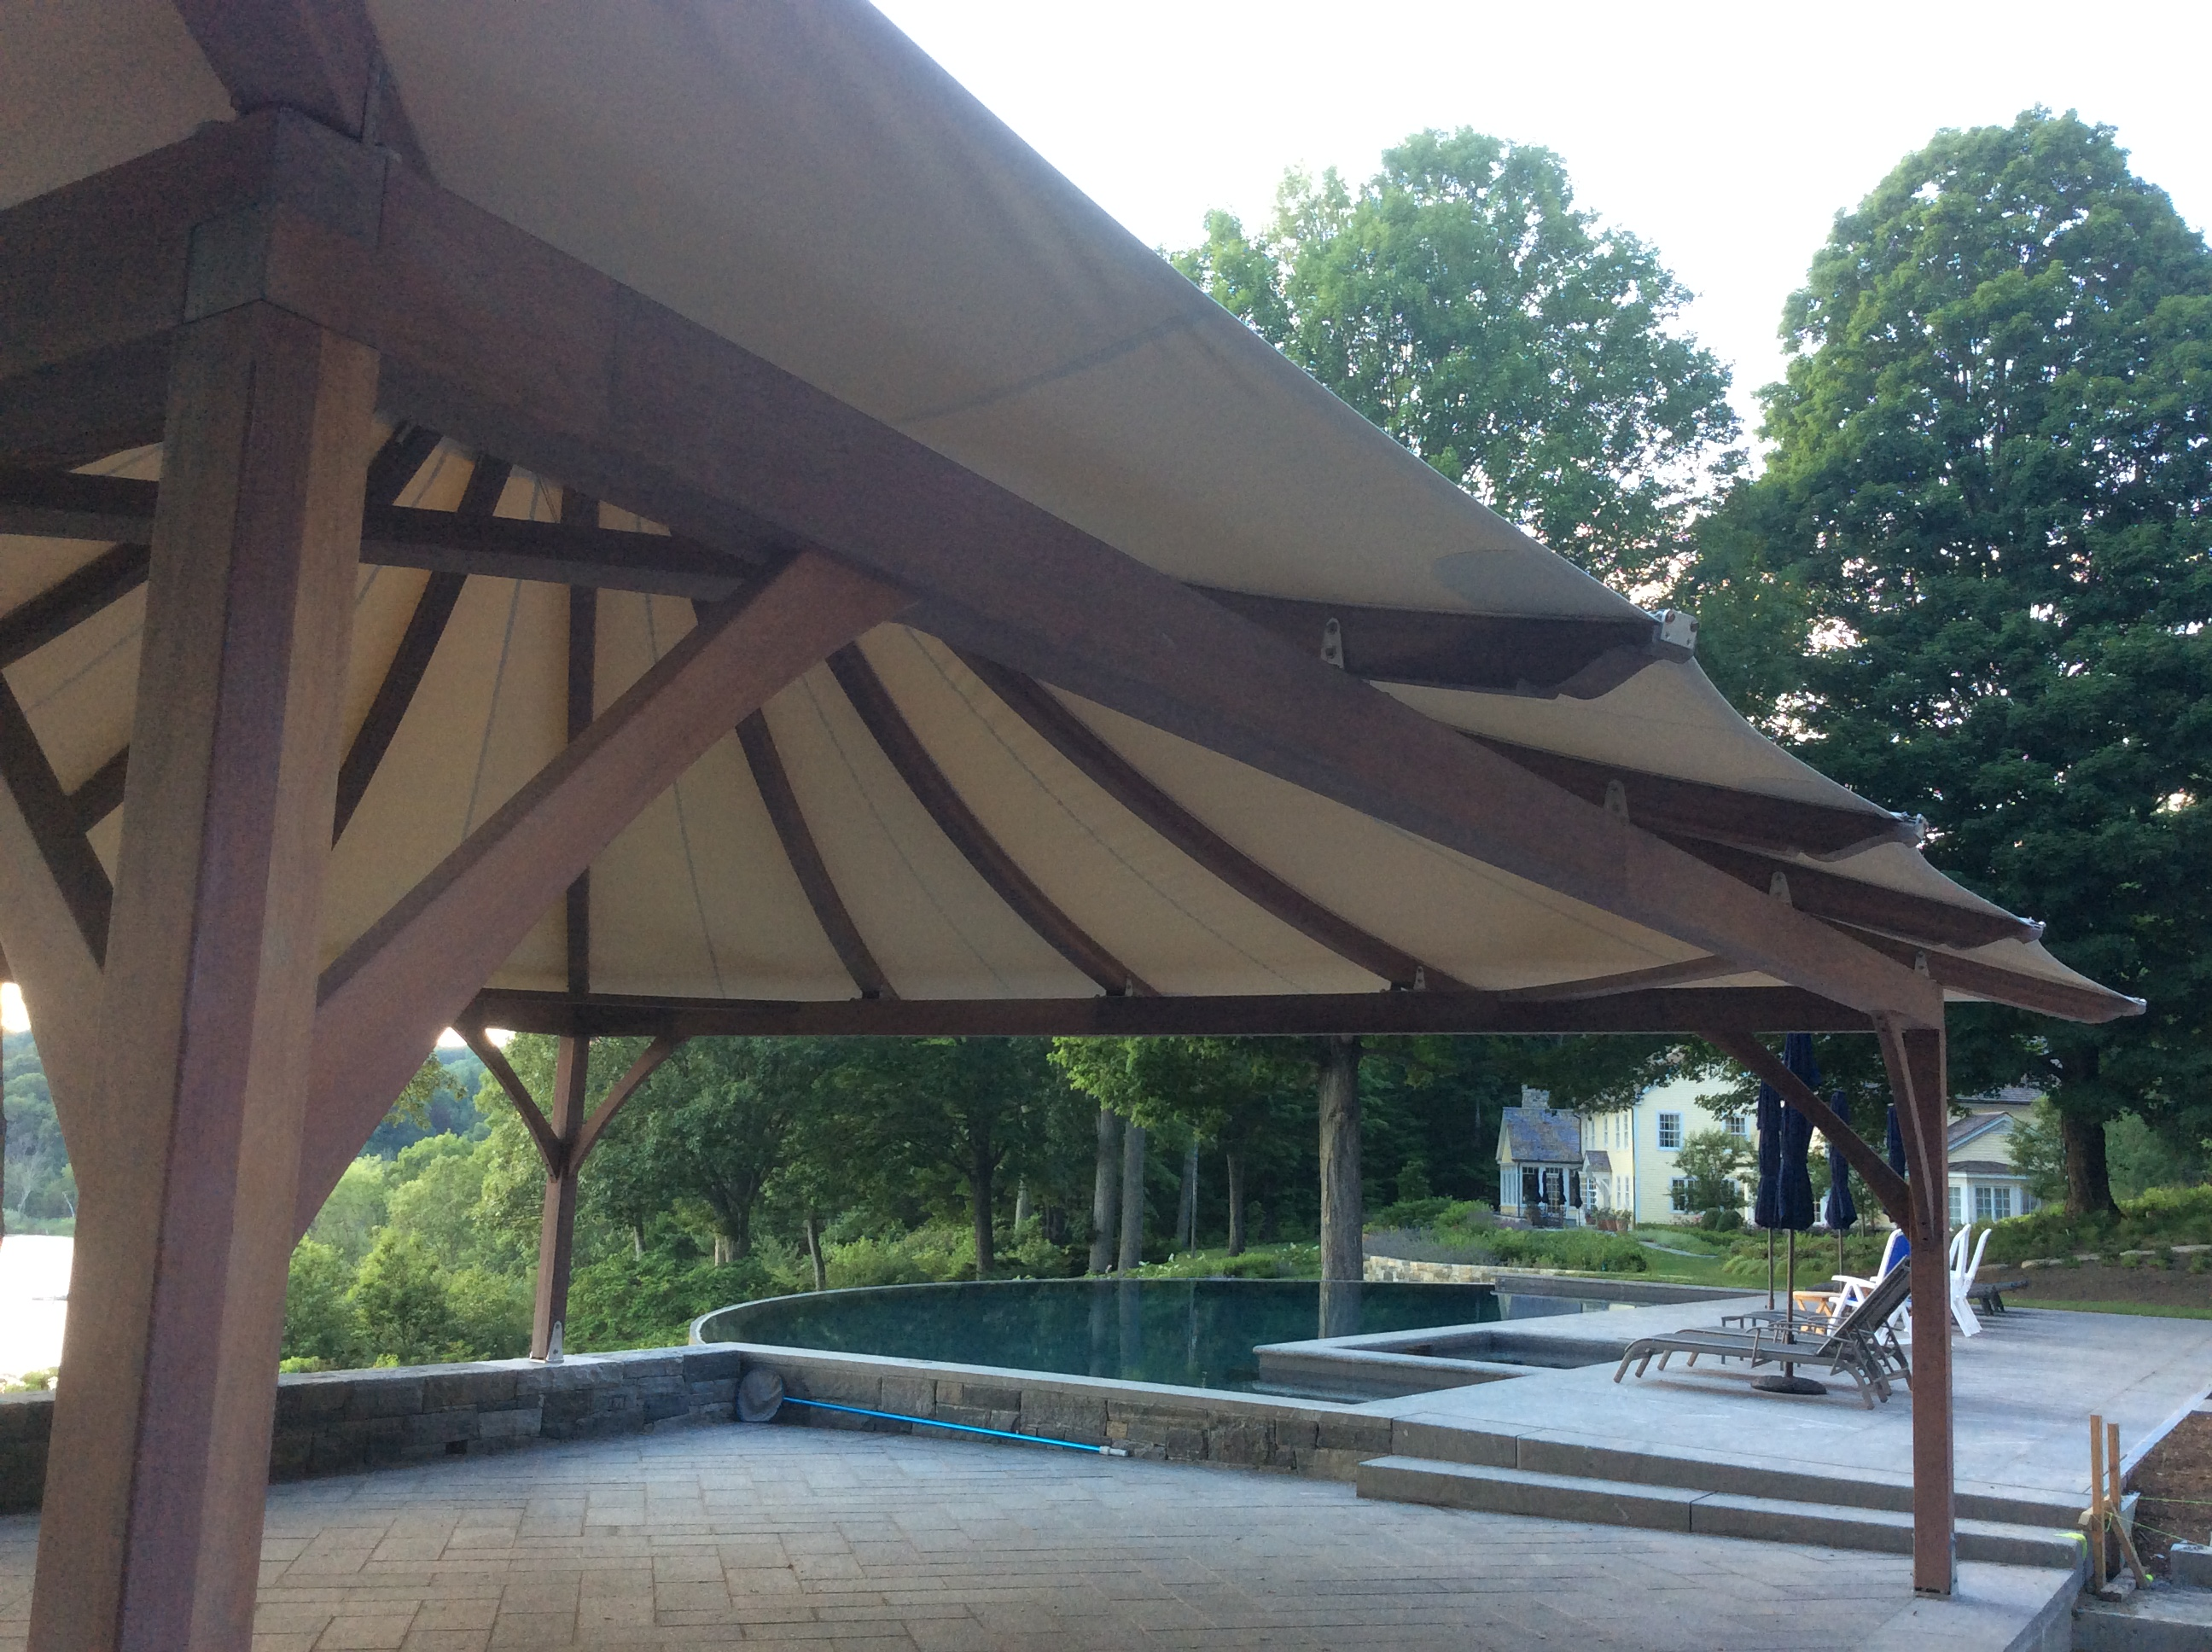 Large tent secured with PE46-Hex Penetrator earth anchors